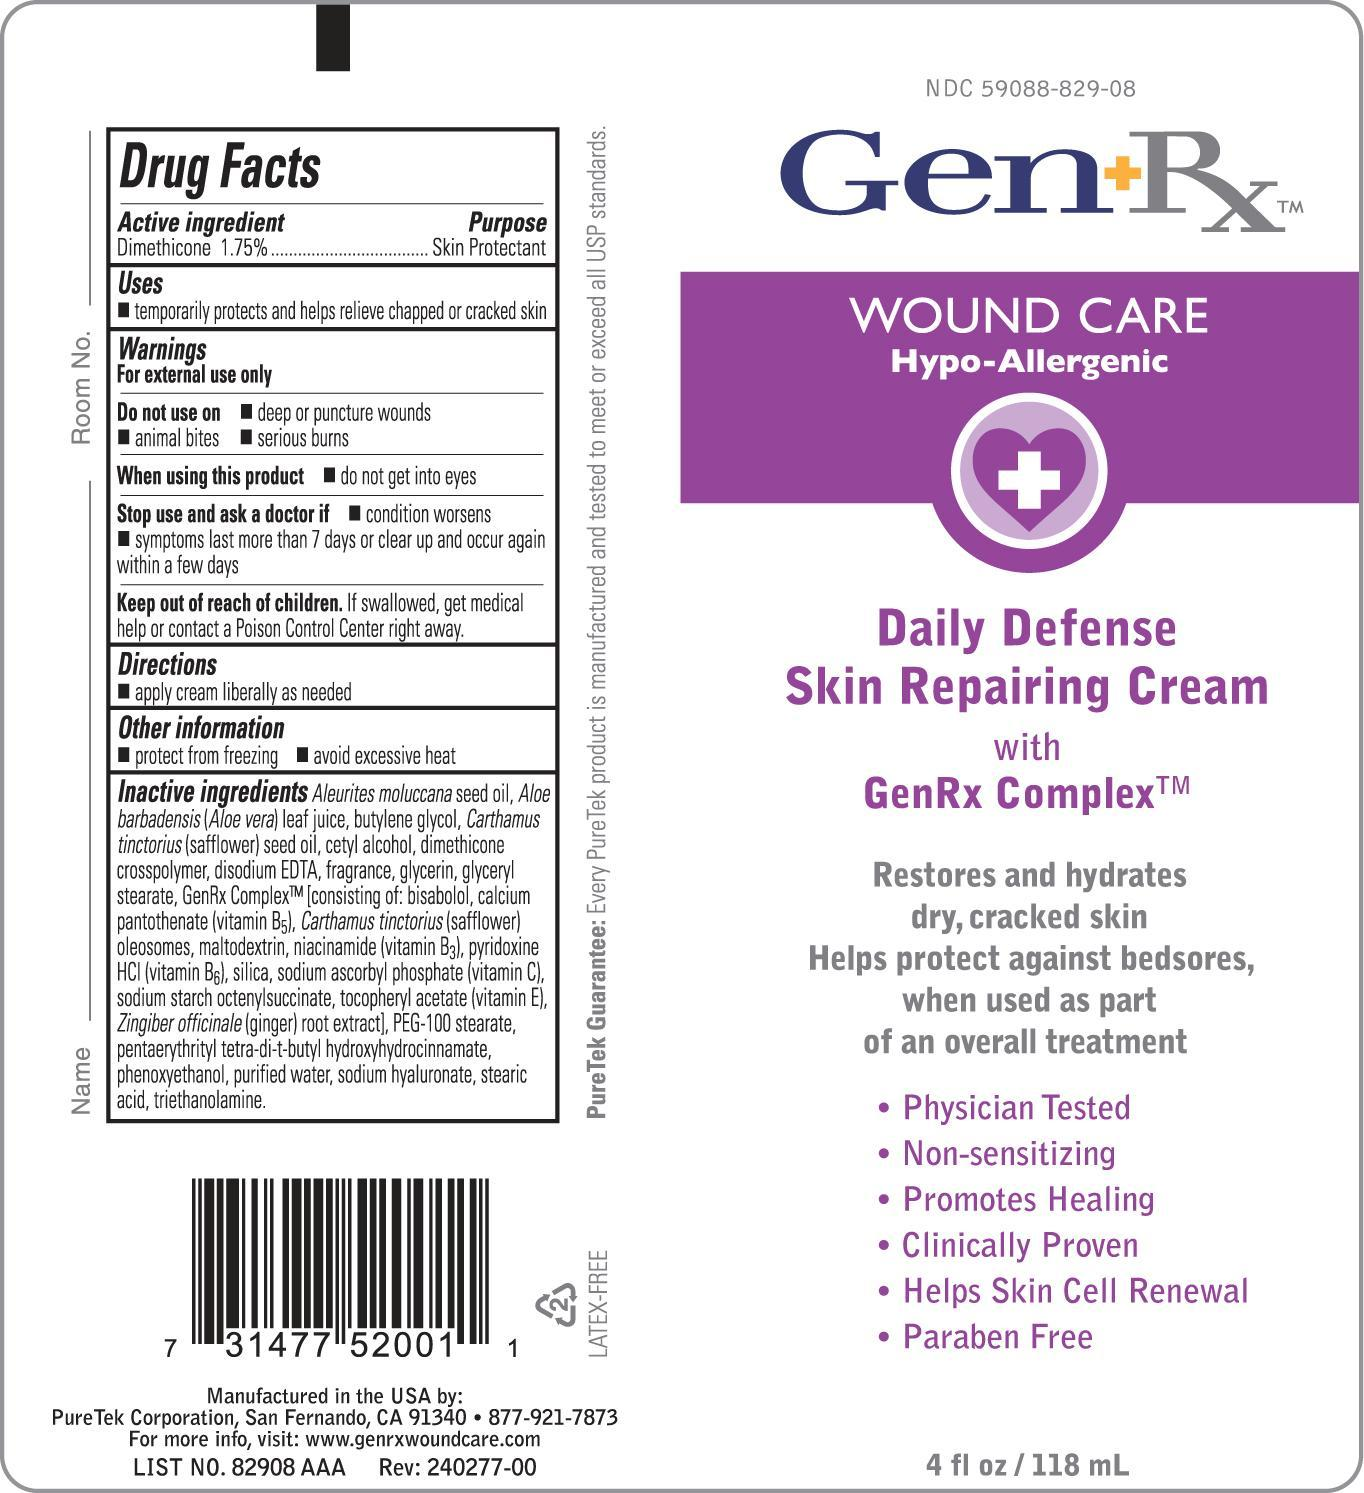 GenRx Daily Defense Skin Repairing Cream 4 oz image